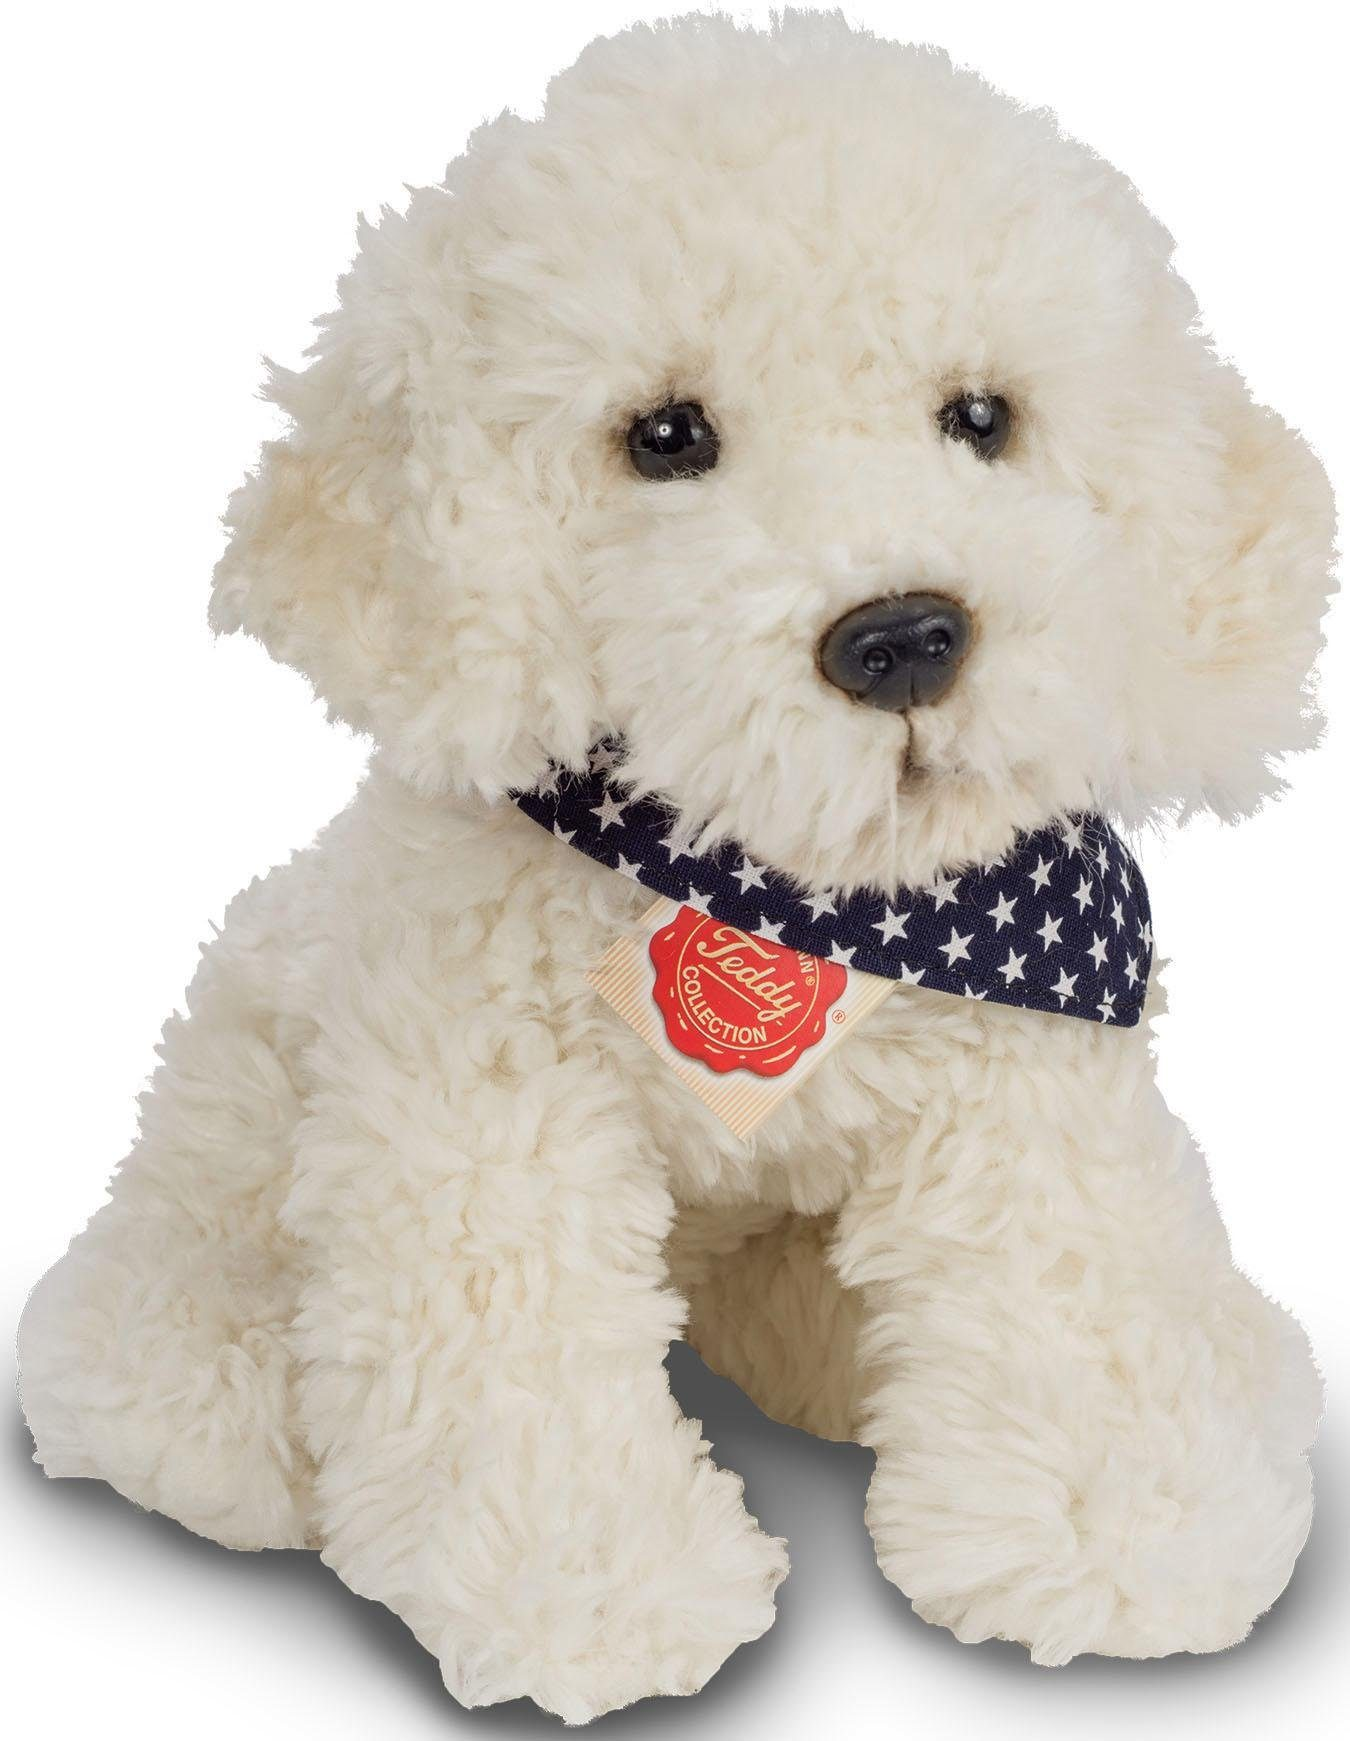 Teddy Hermann® COLLECTION Plüschtier Hund, »Labradoodle sitzend, 30 cm«